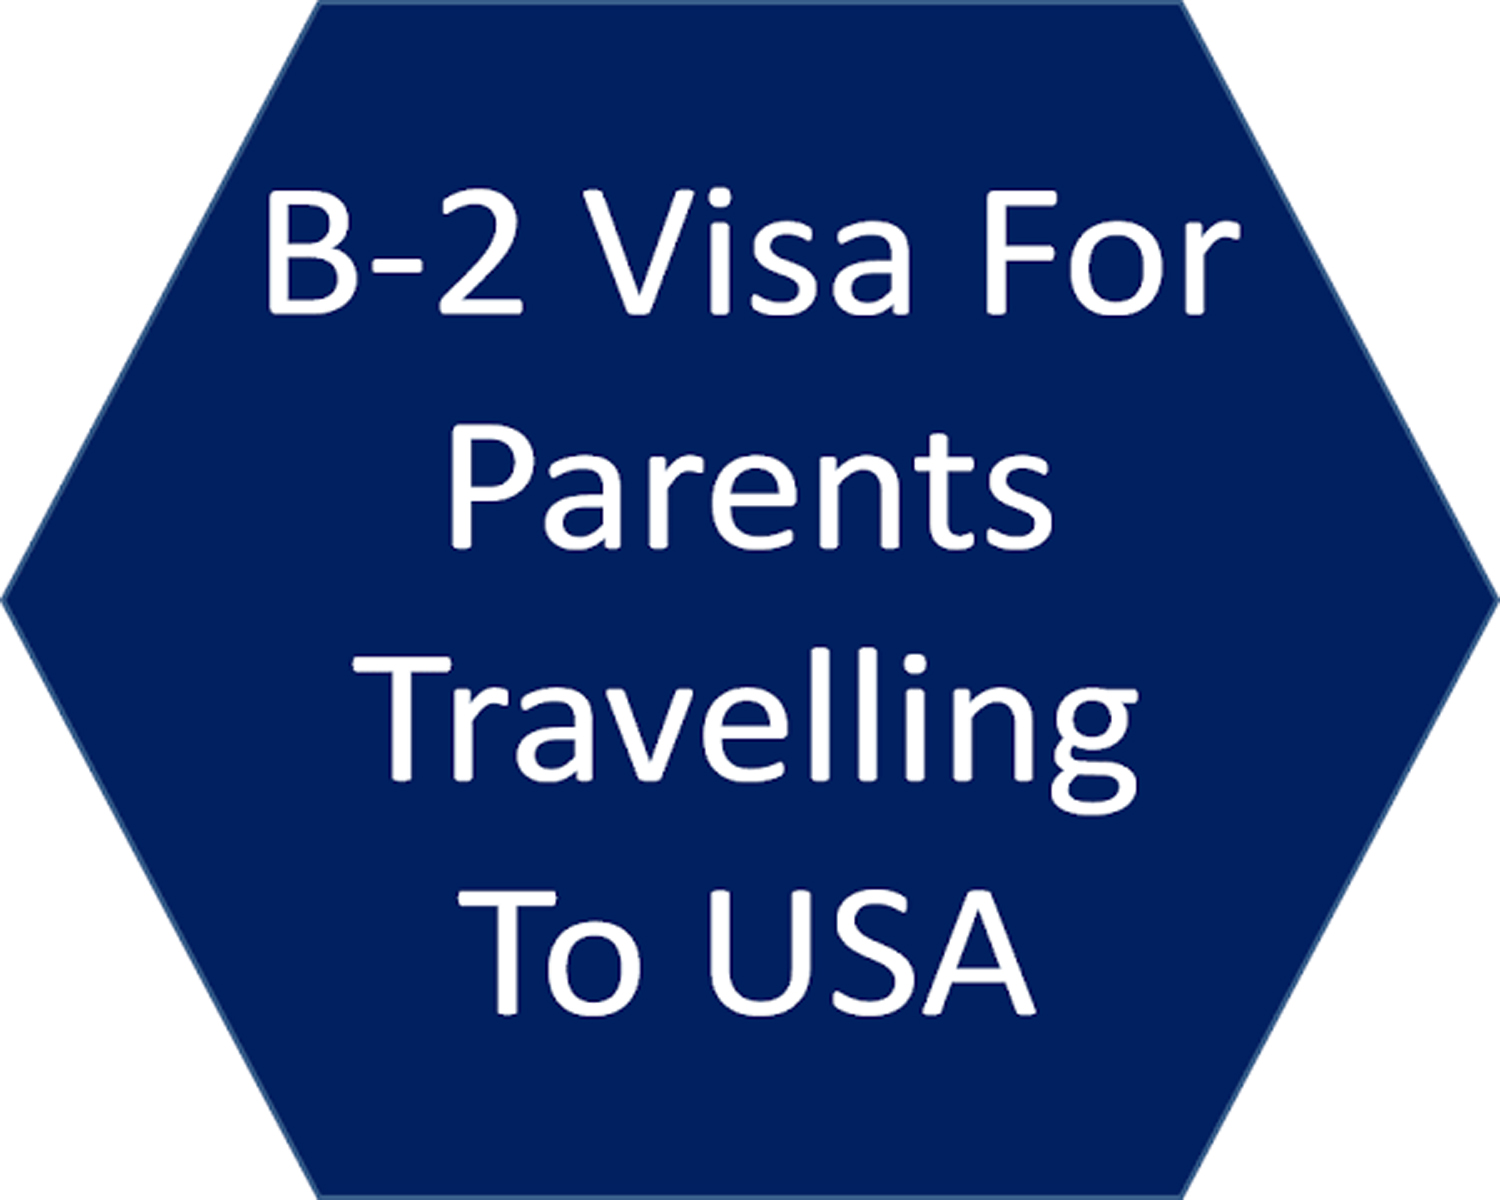 How can I bring my parents into the U.S. while I'm studying with an F1 visa?